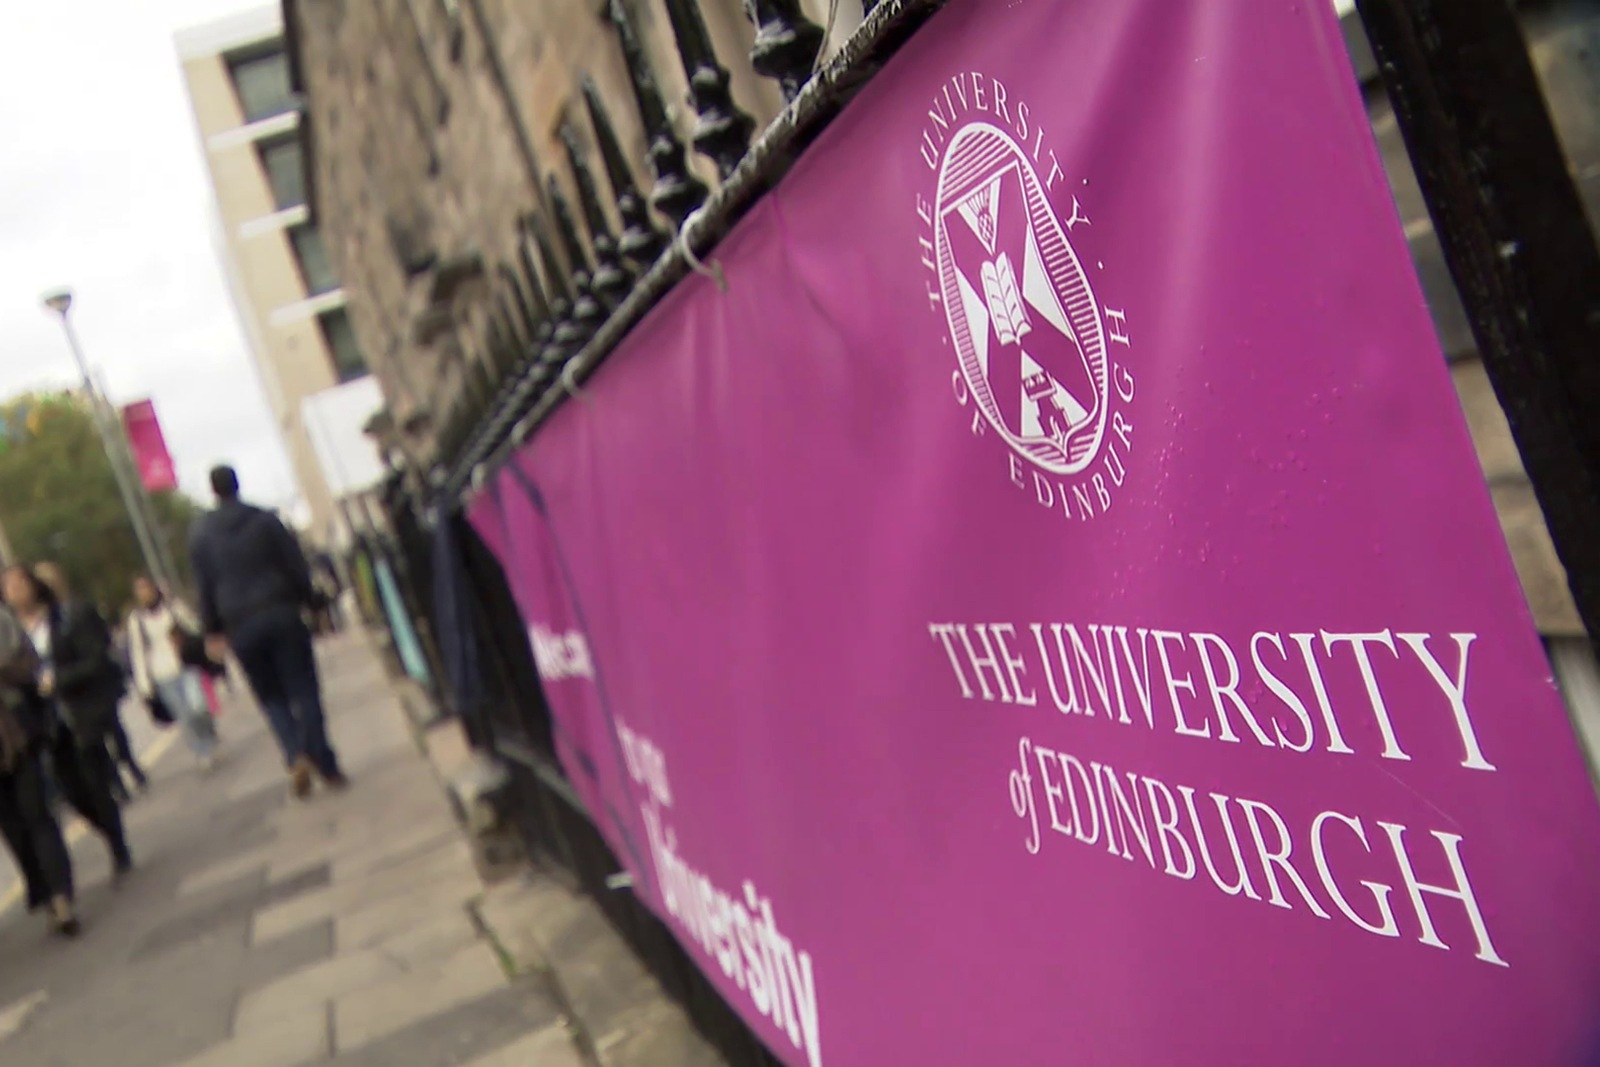 University of Edinburgh banner on George Square